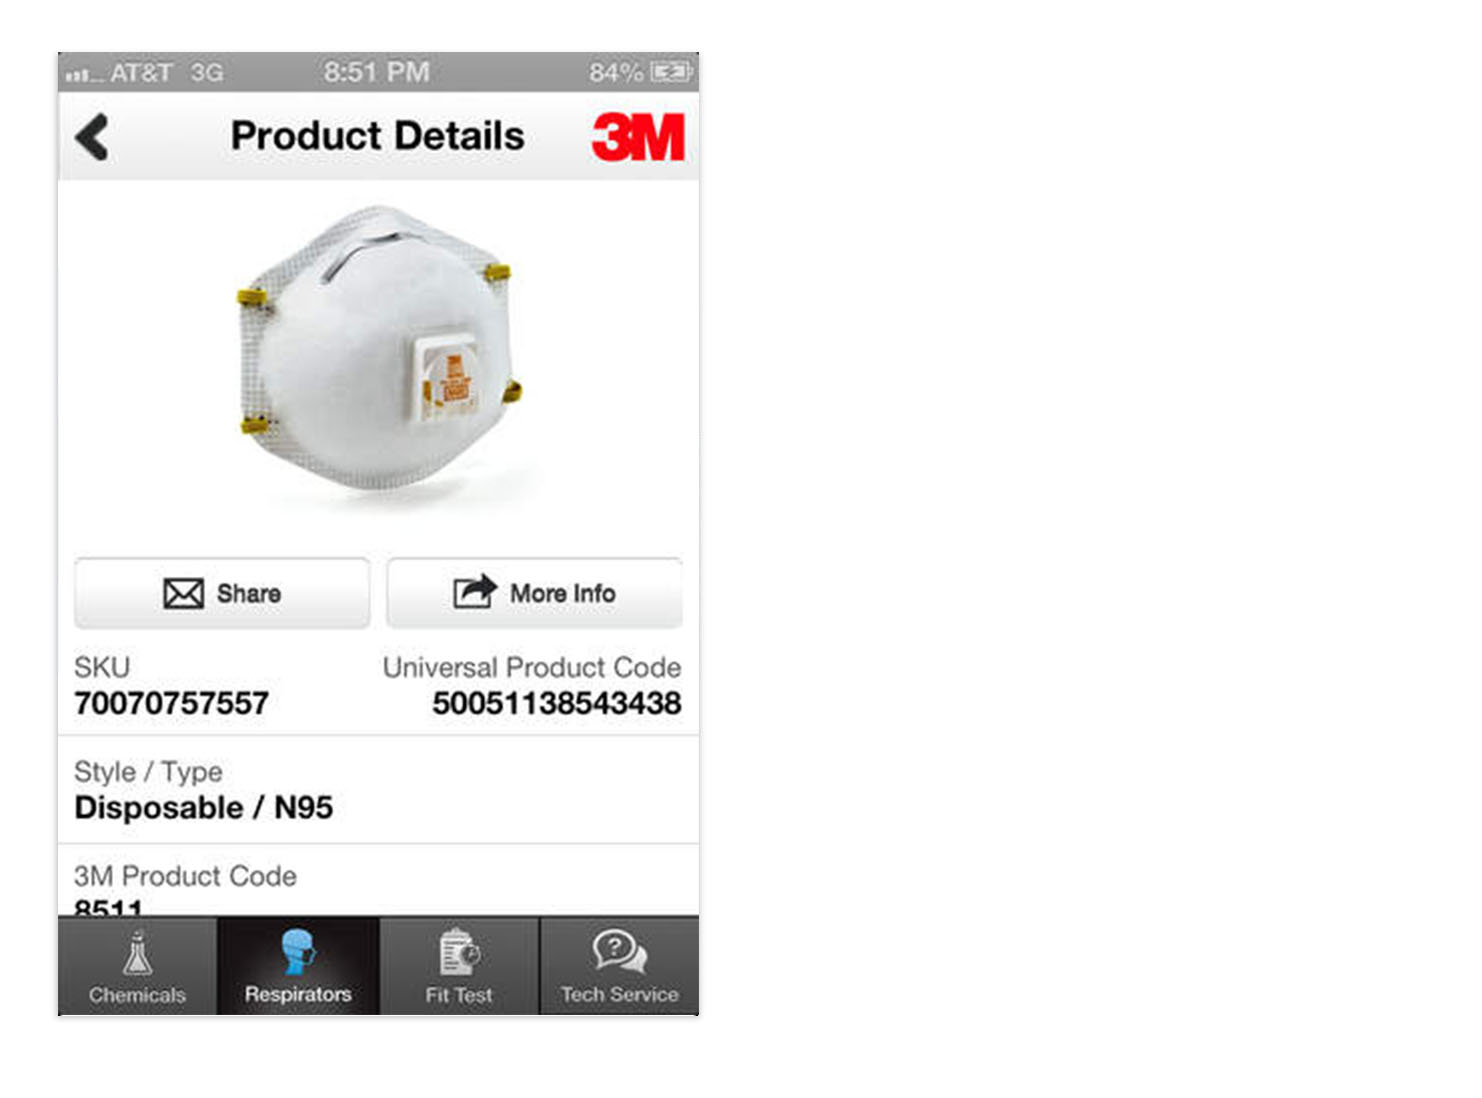 3M Respiratory Protection Resource Guide - iPhone and Android